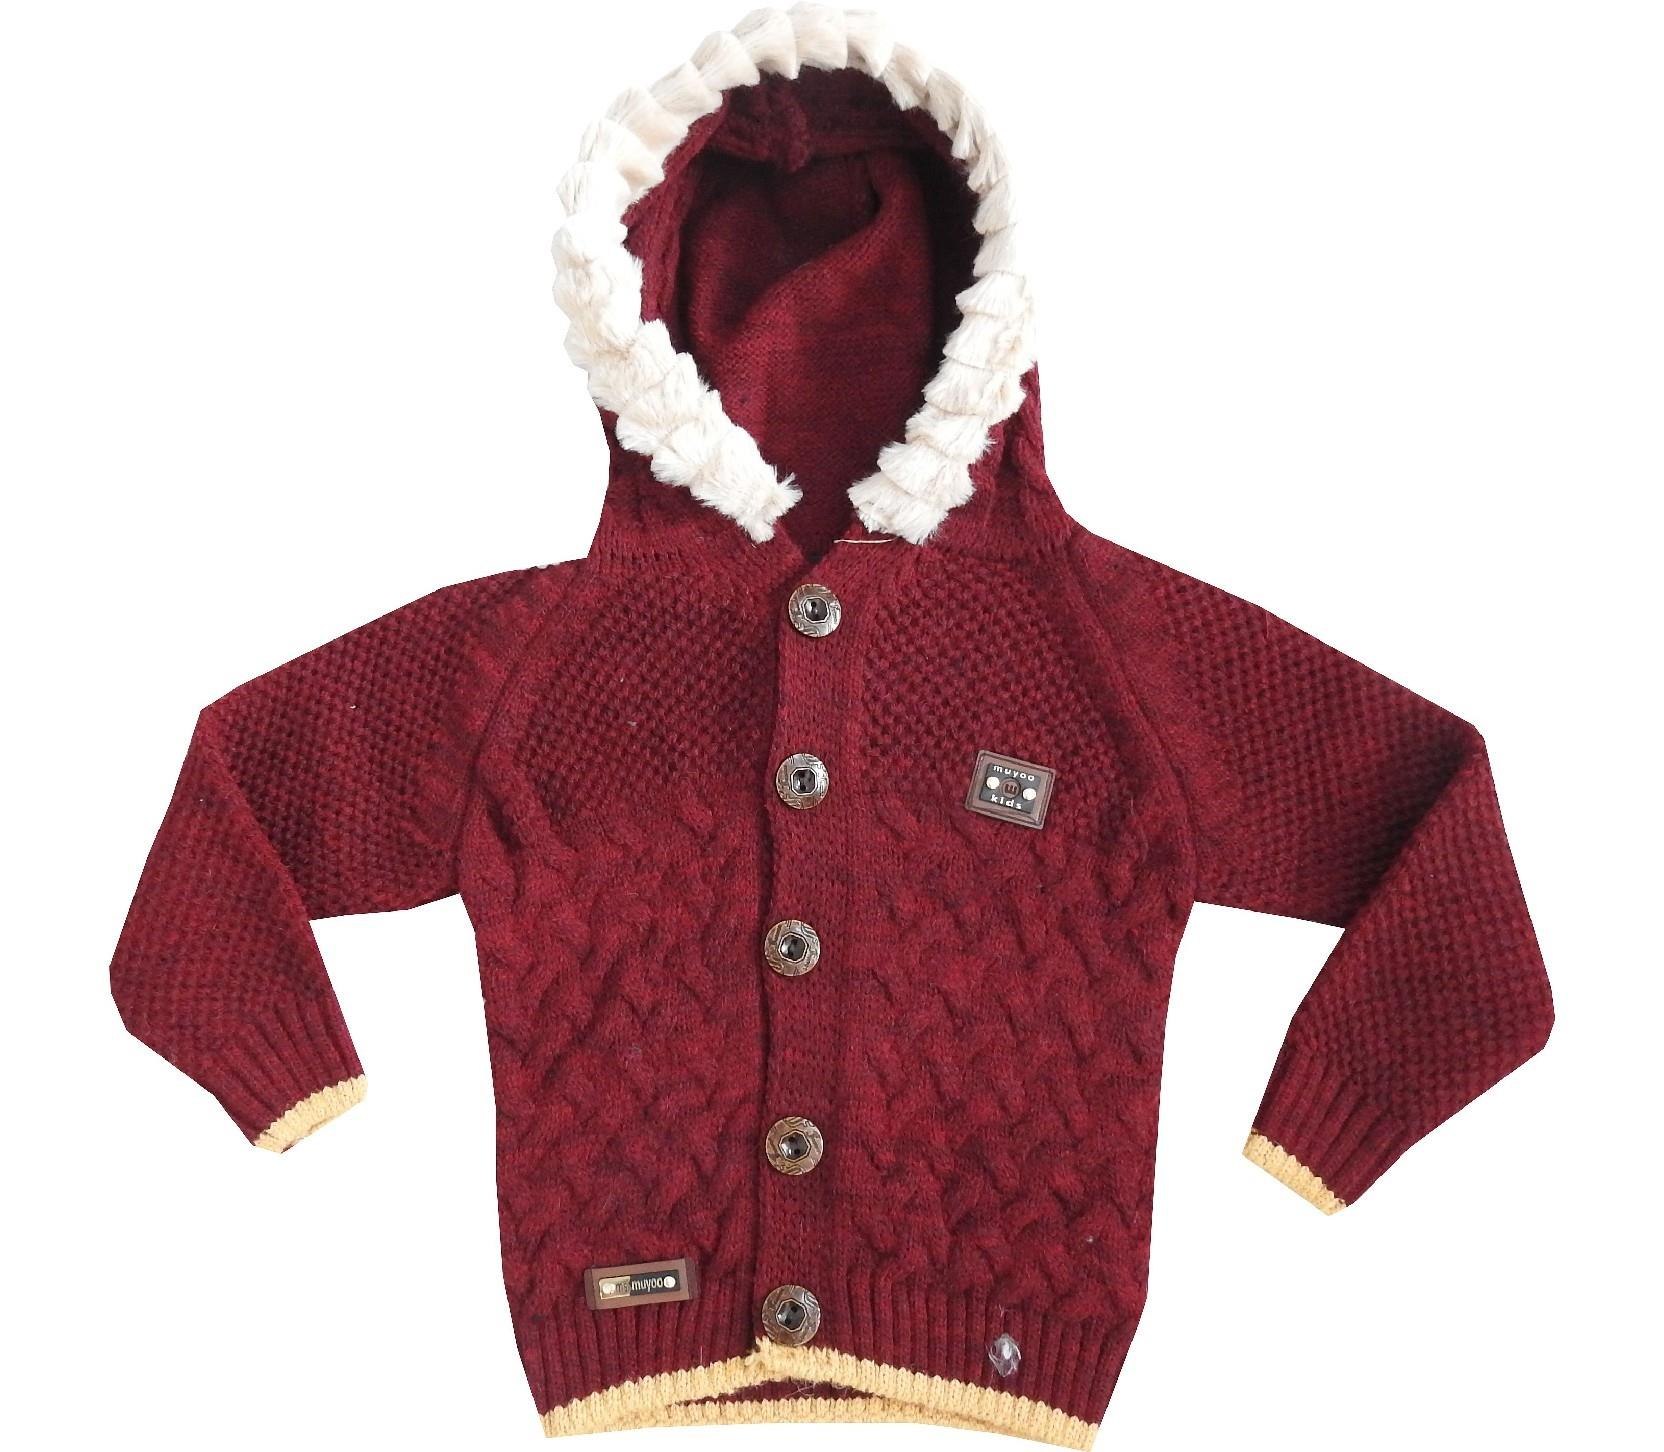 HOODIE KNITTED DESIGN CARDIGAN FOR BOY (1-2-3-4 AGE)